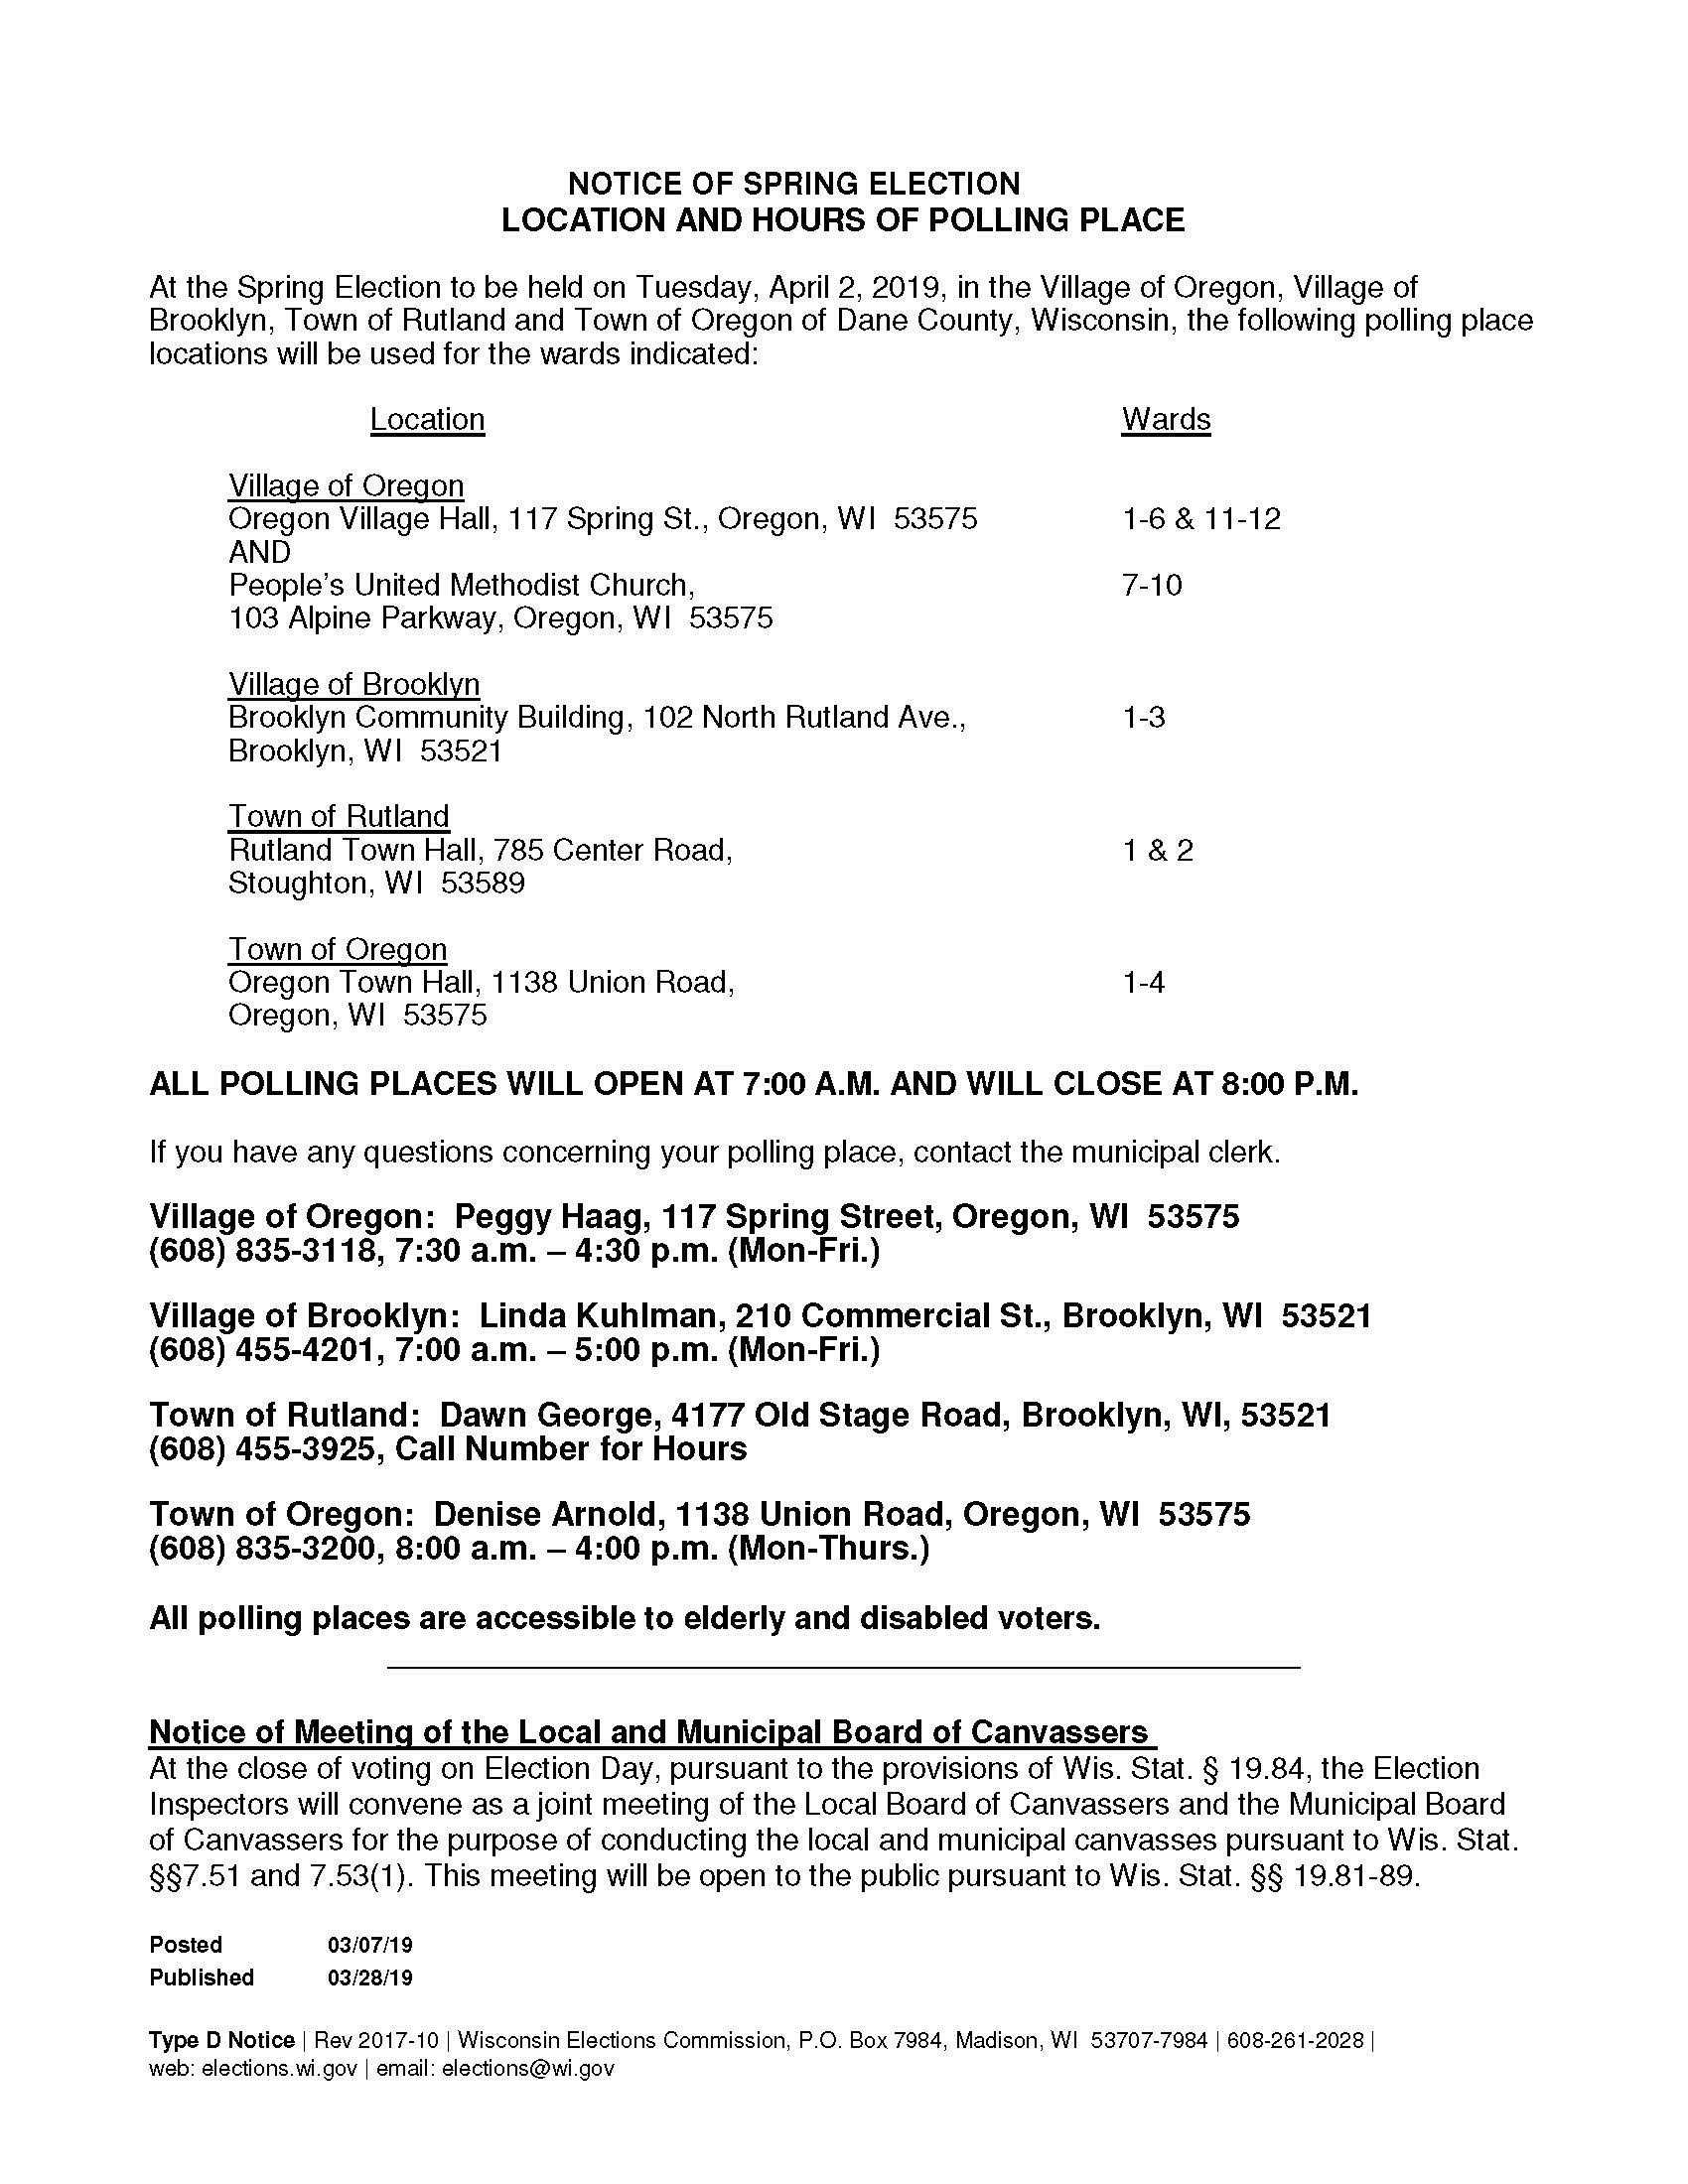 Type D Notice of Location and Hours - April 2019